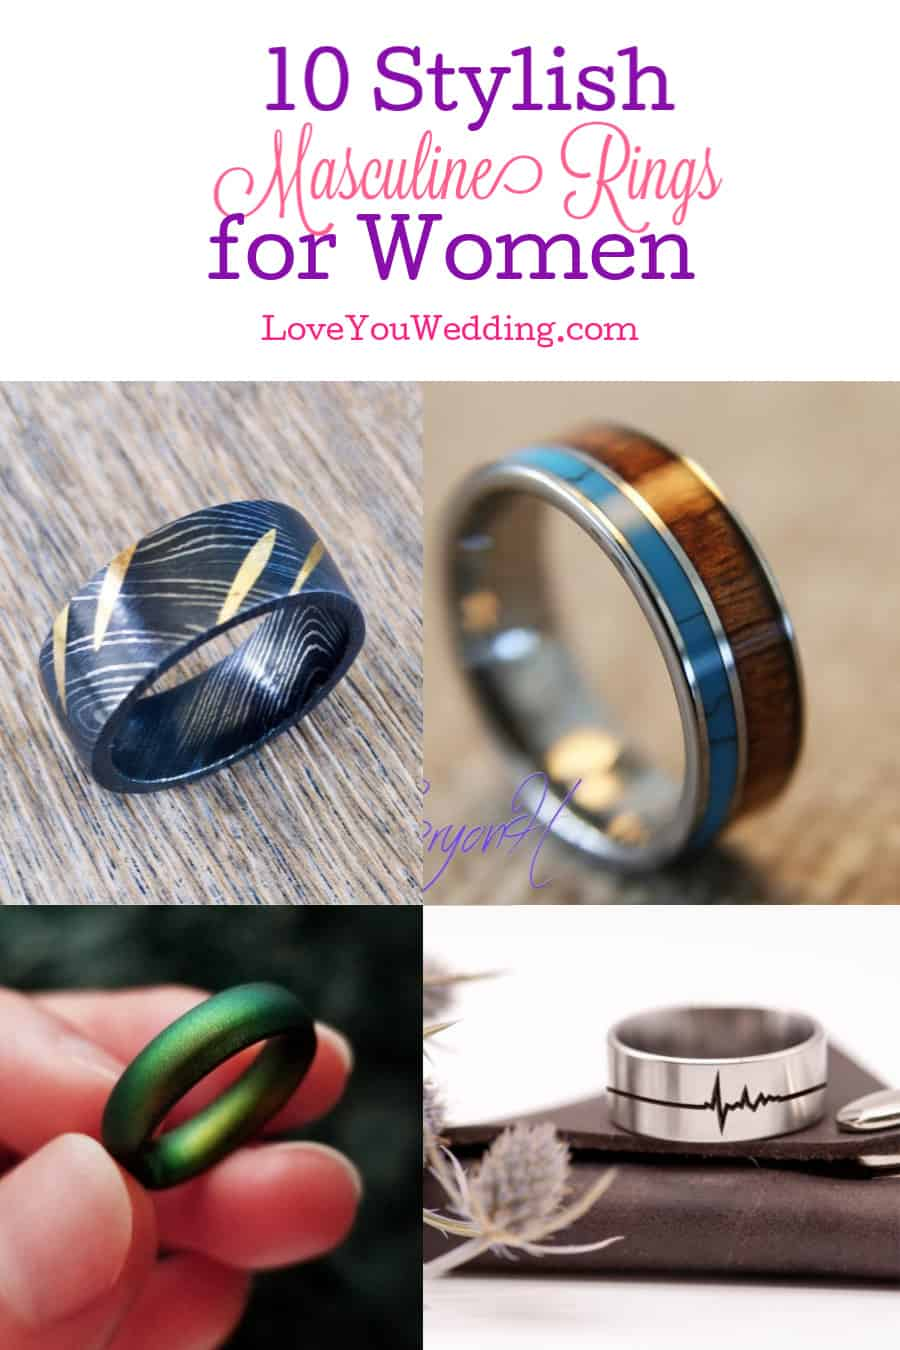 Looking for masculine rings for women that are stylish and unique? Check out these 10 beautiful options for engagements, weddings and more!